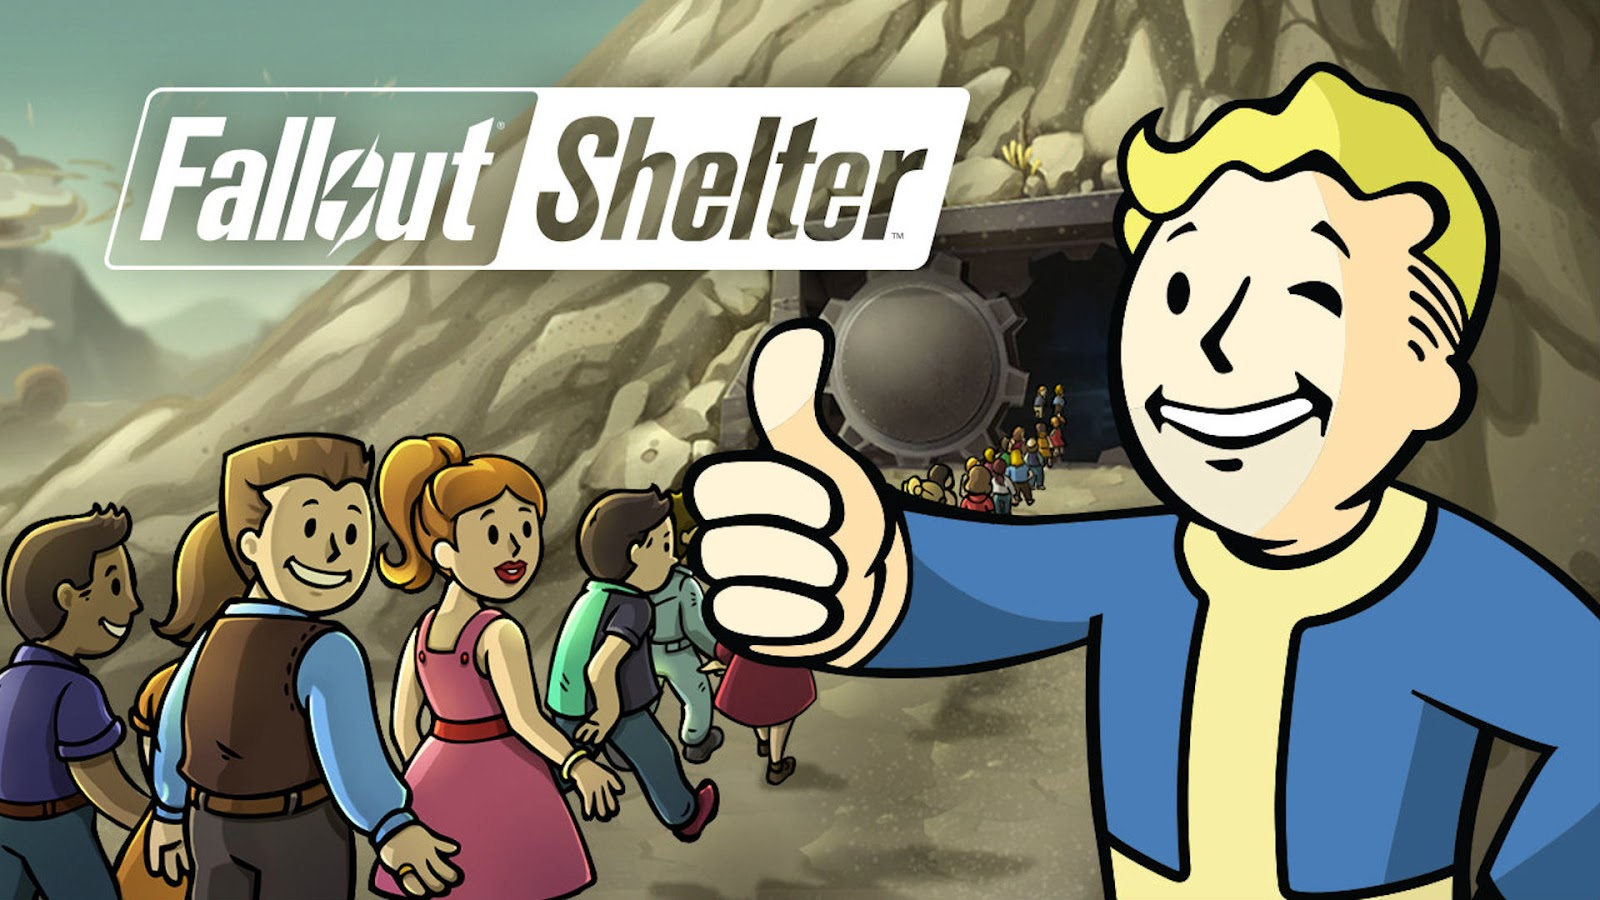 Fallout Shelter Game Fallout Shelter Game Review